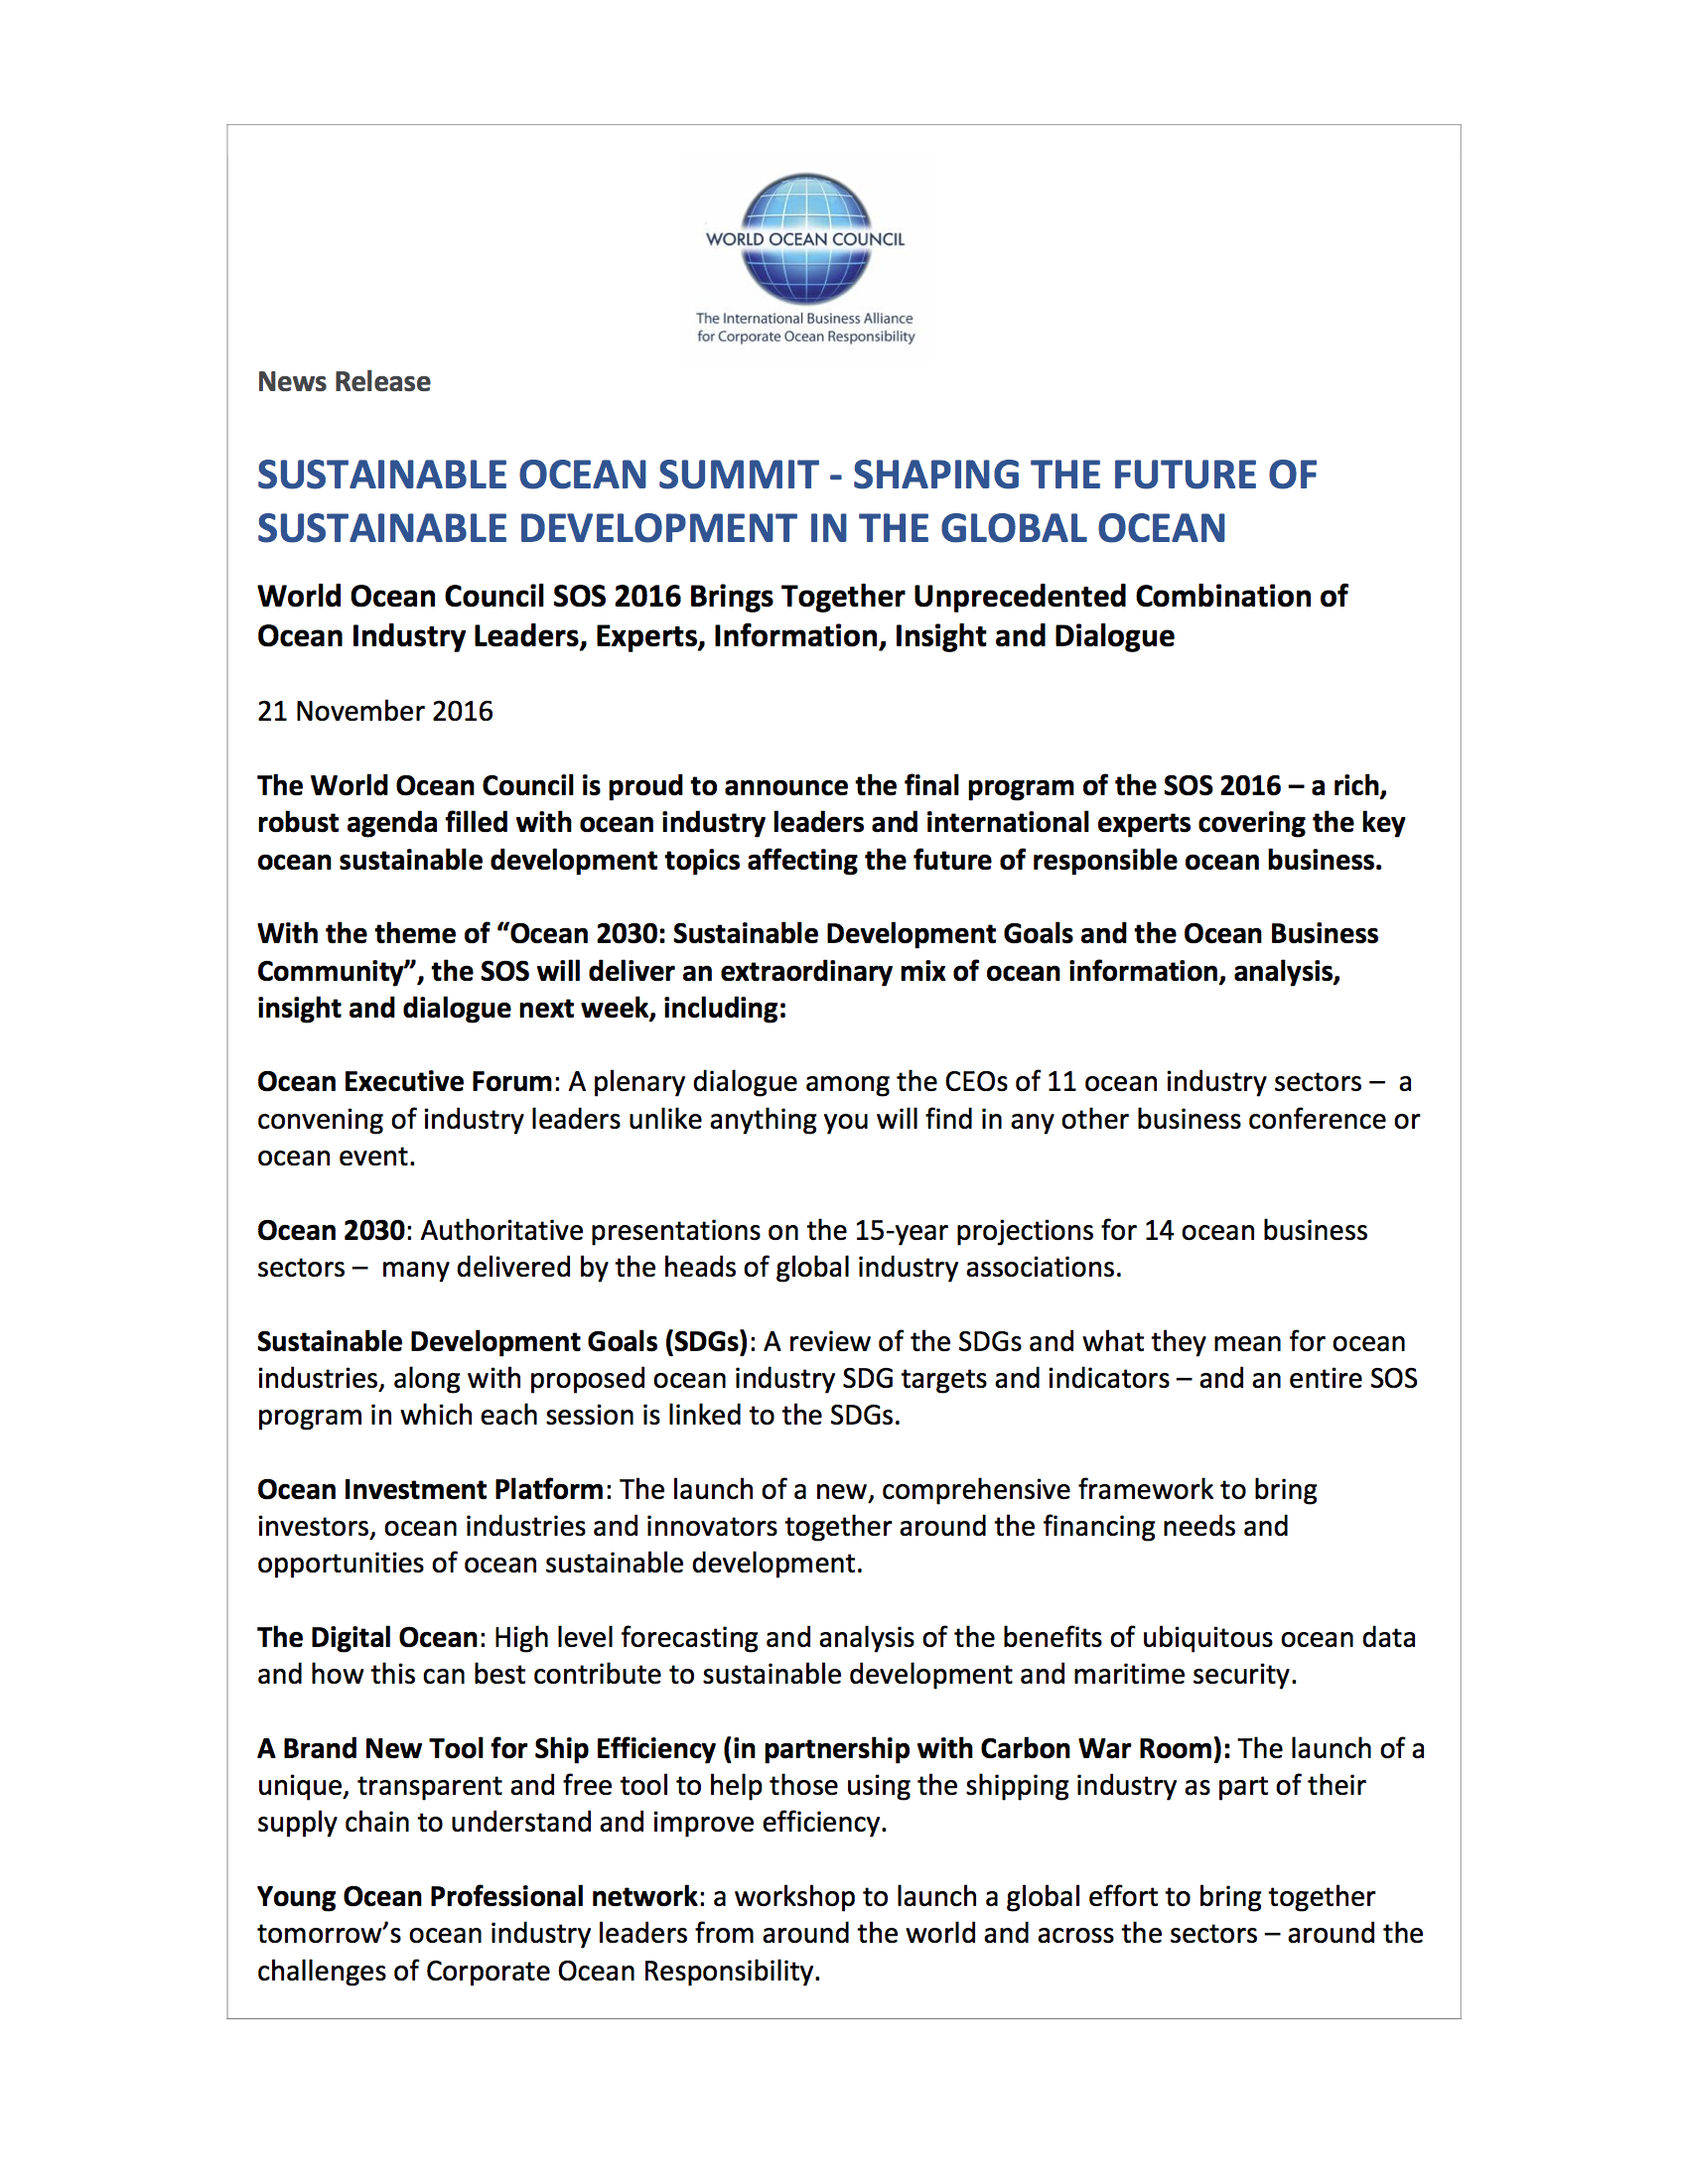 new releases world ocean council sustainable ocean summit shaping the future of ocean sustainable development 21 2016